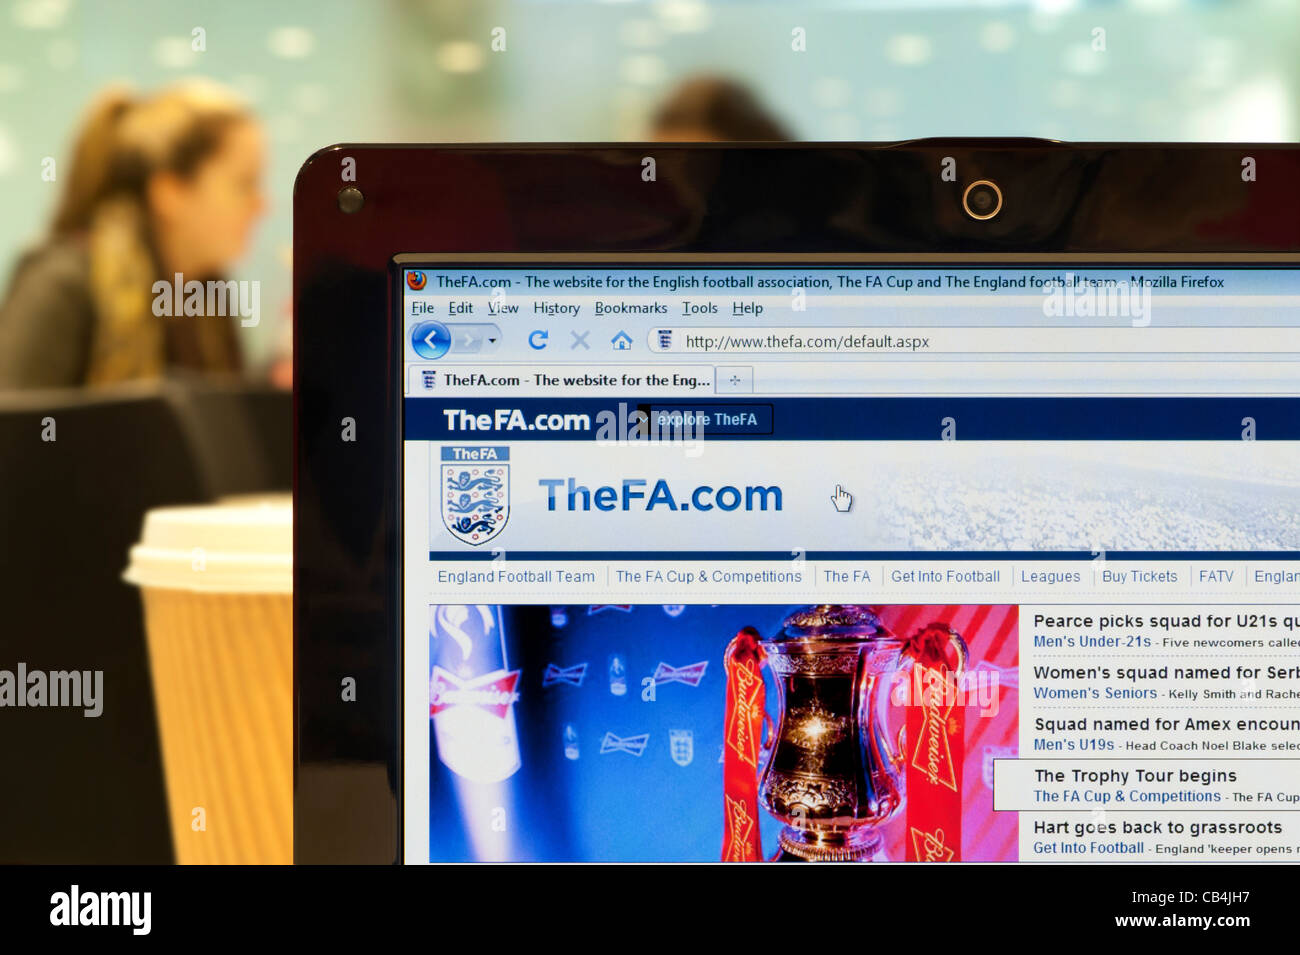 The FA website shot in a coffee shop environment (Editorial use only: print, TV, e-book and editorial website). - Stock Image